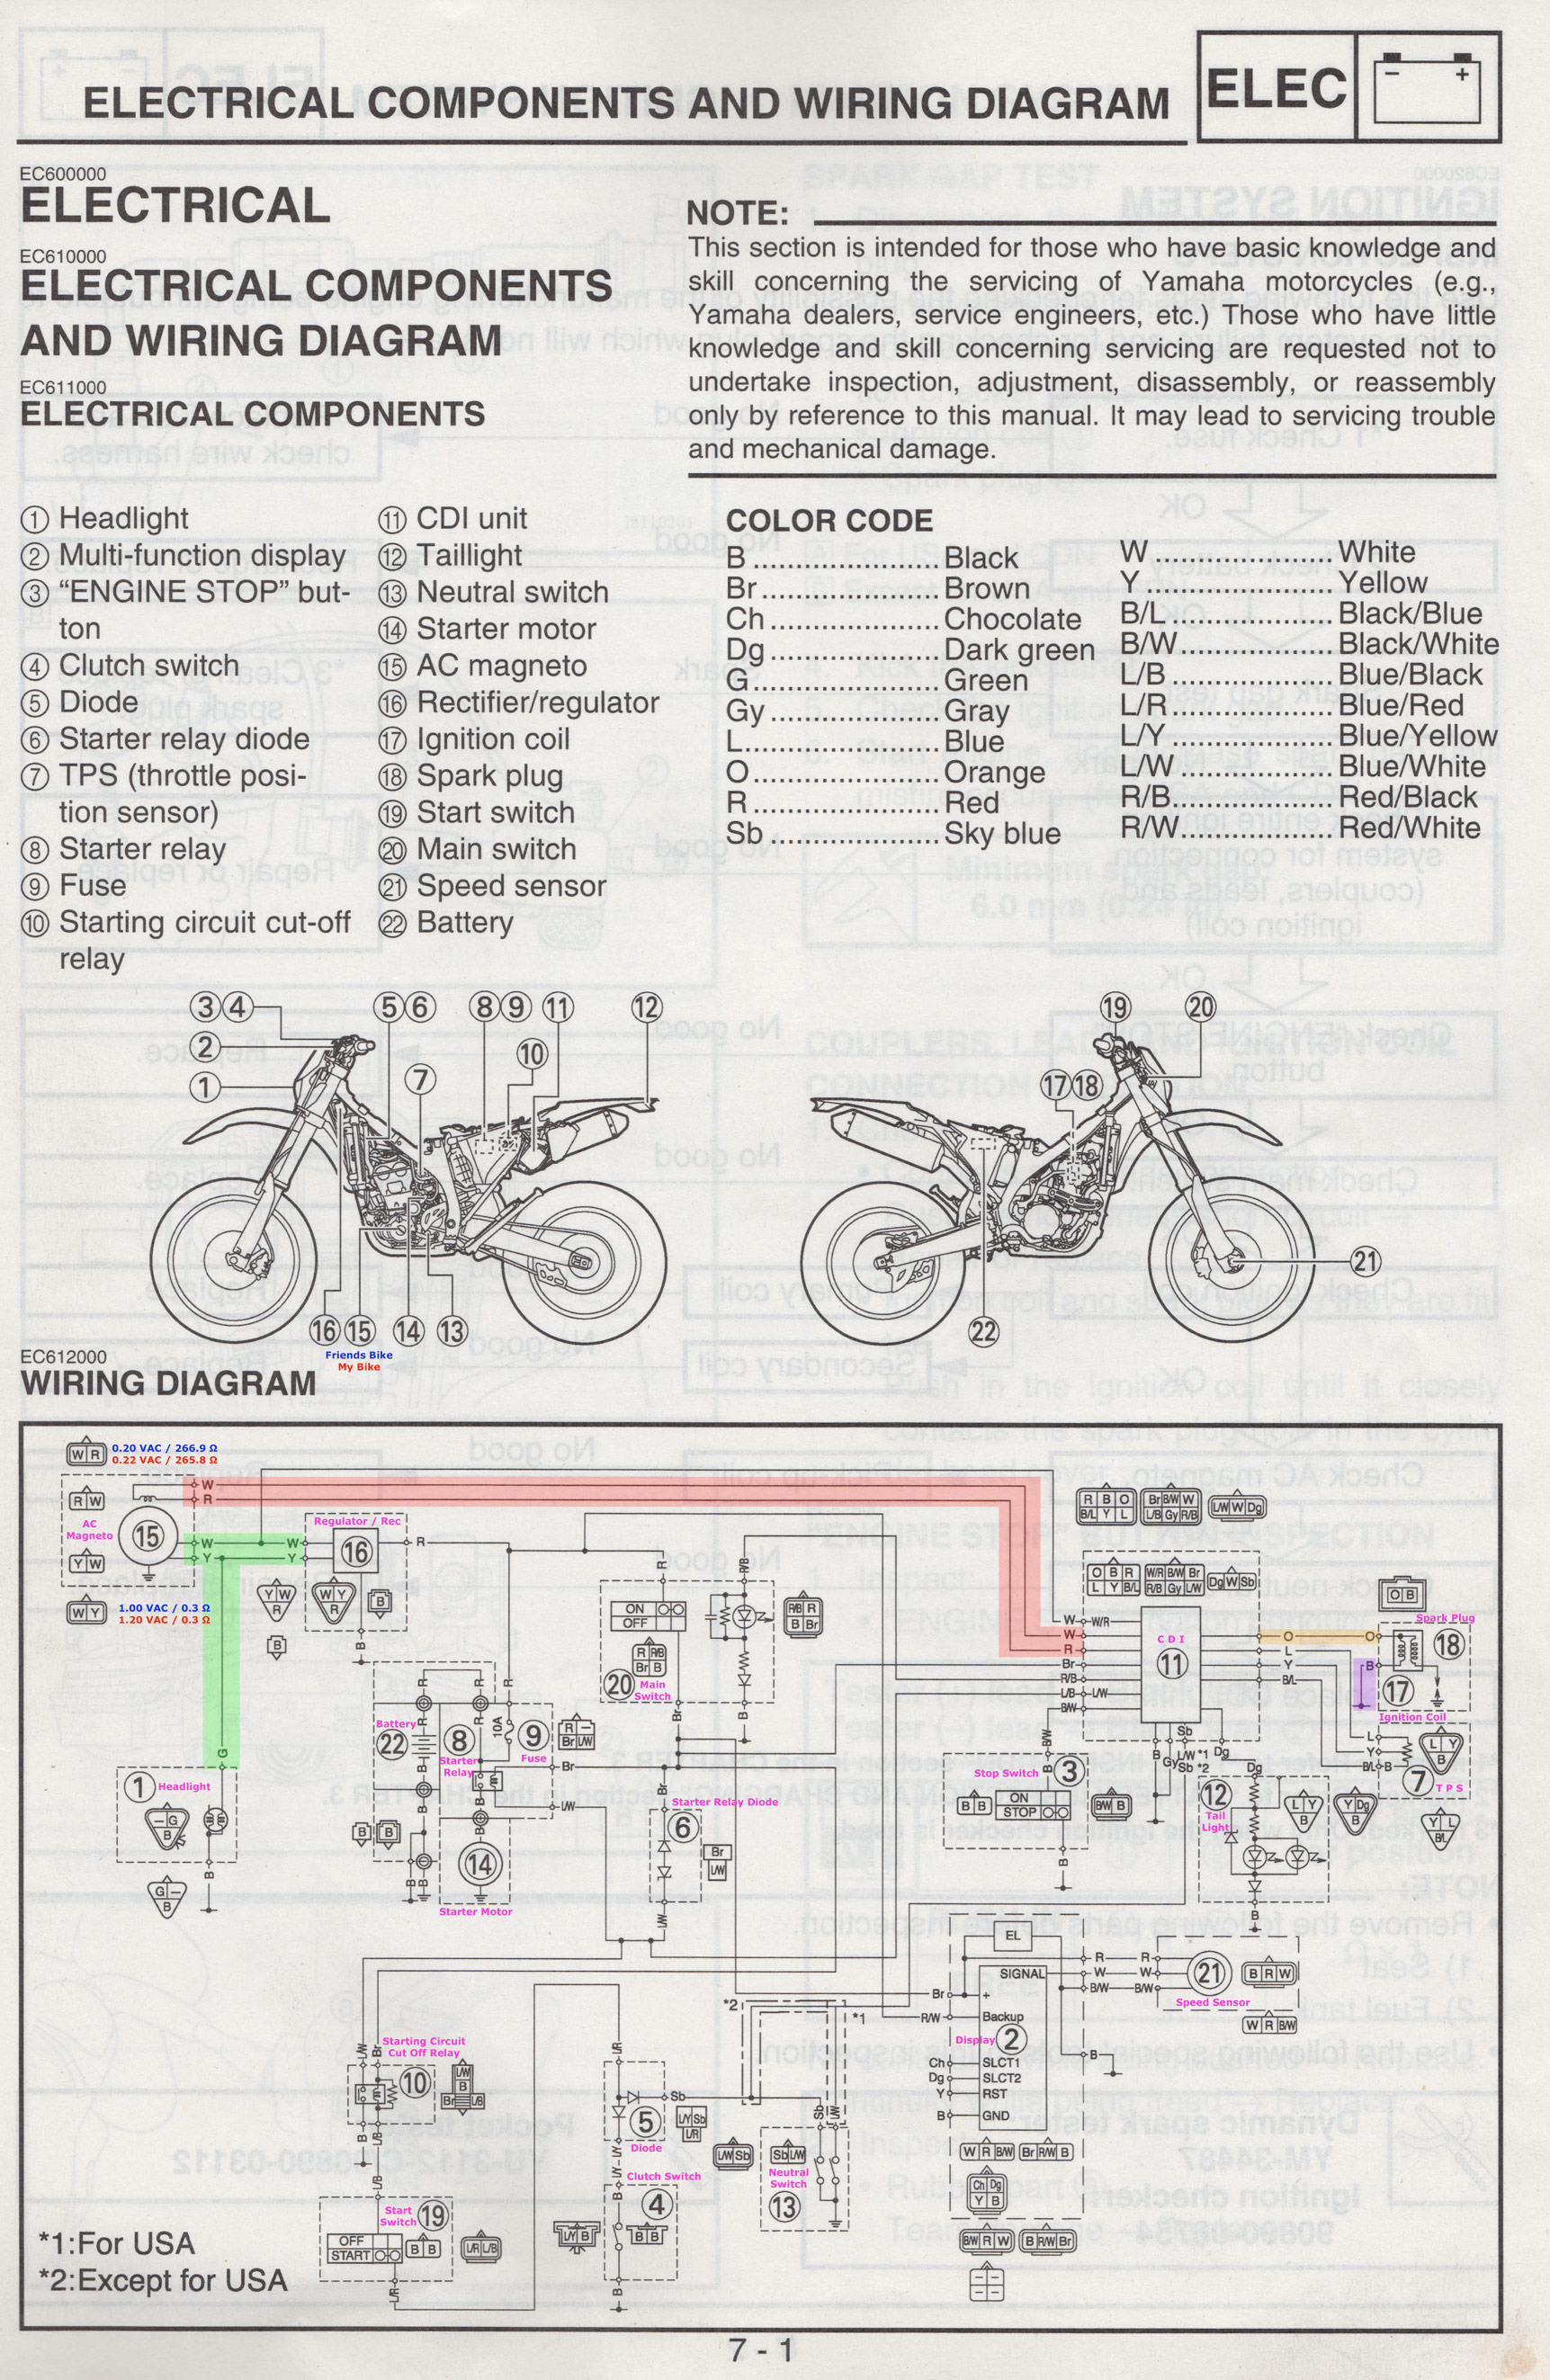 yamaha motorcycle electrical wiring diagram images 2003 yamaha r6 ignition wiring diagram 2003 yamaha r6 wiring diagram